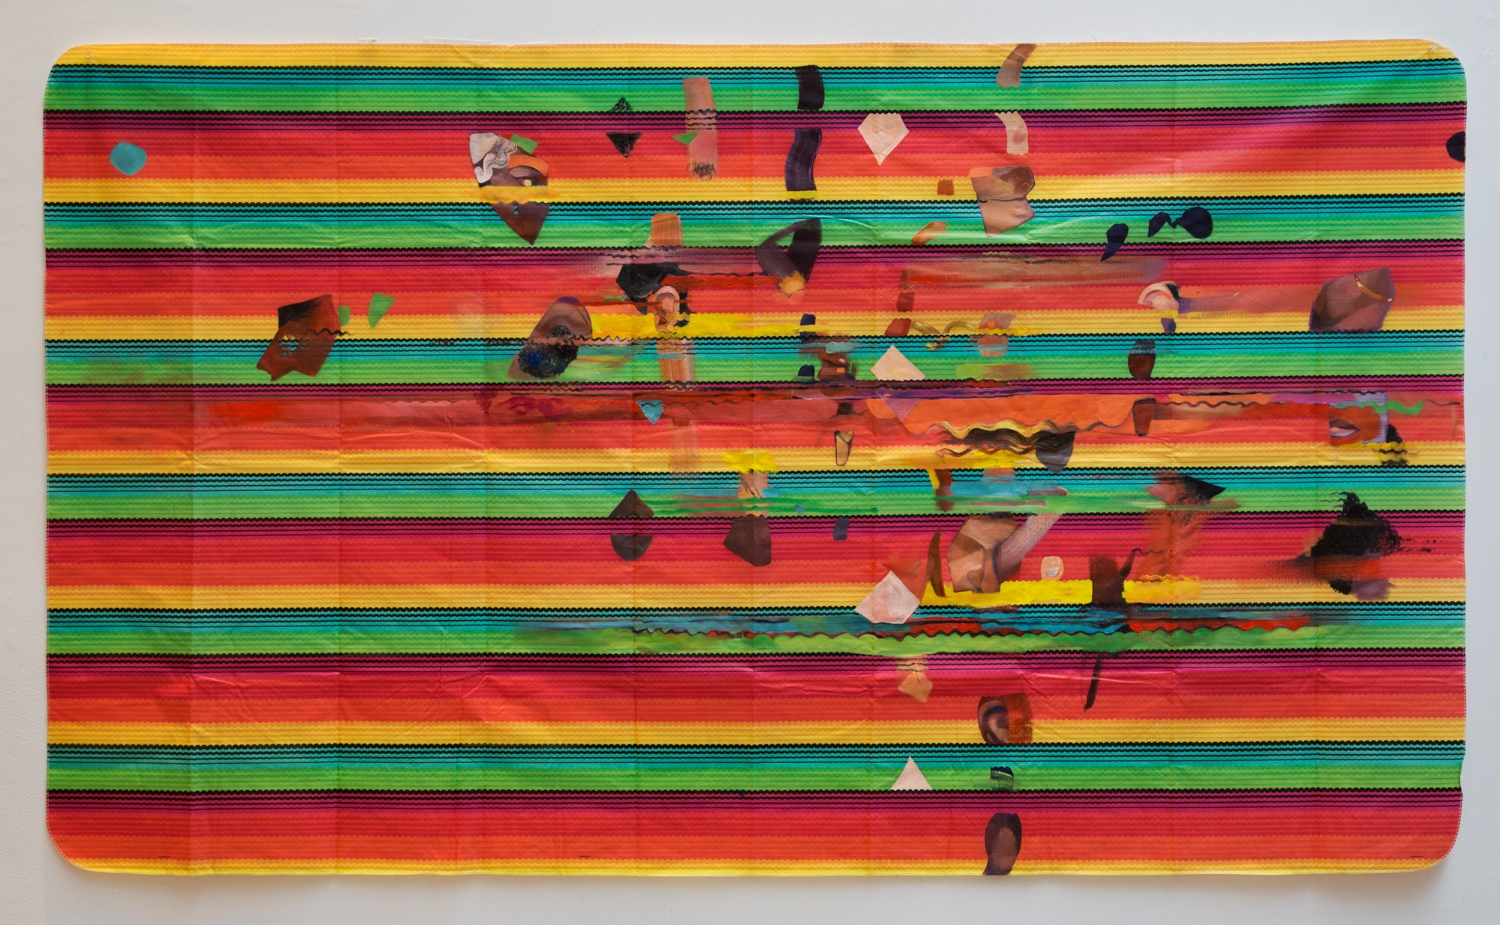 """2013, oil on plastic """"fiesta"""" tablecloth, 52 x 90 inches"""